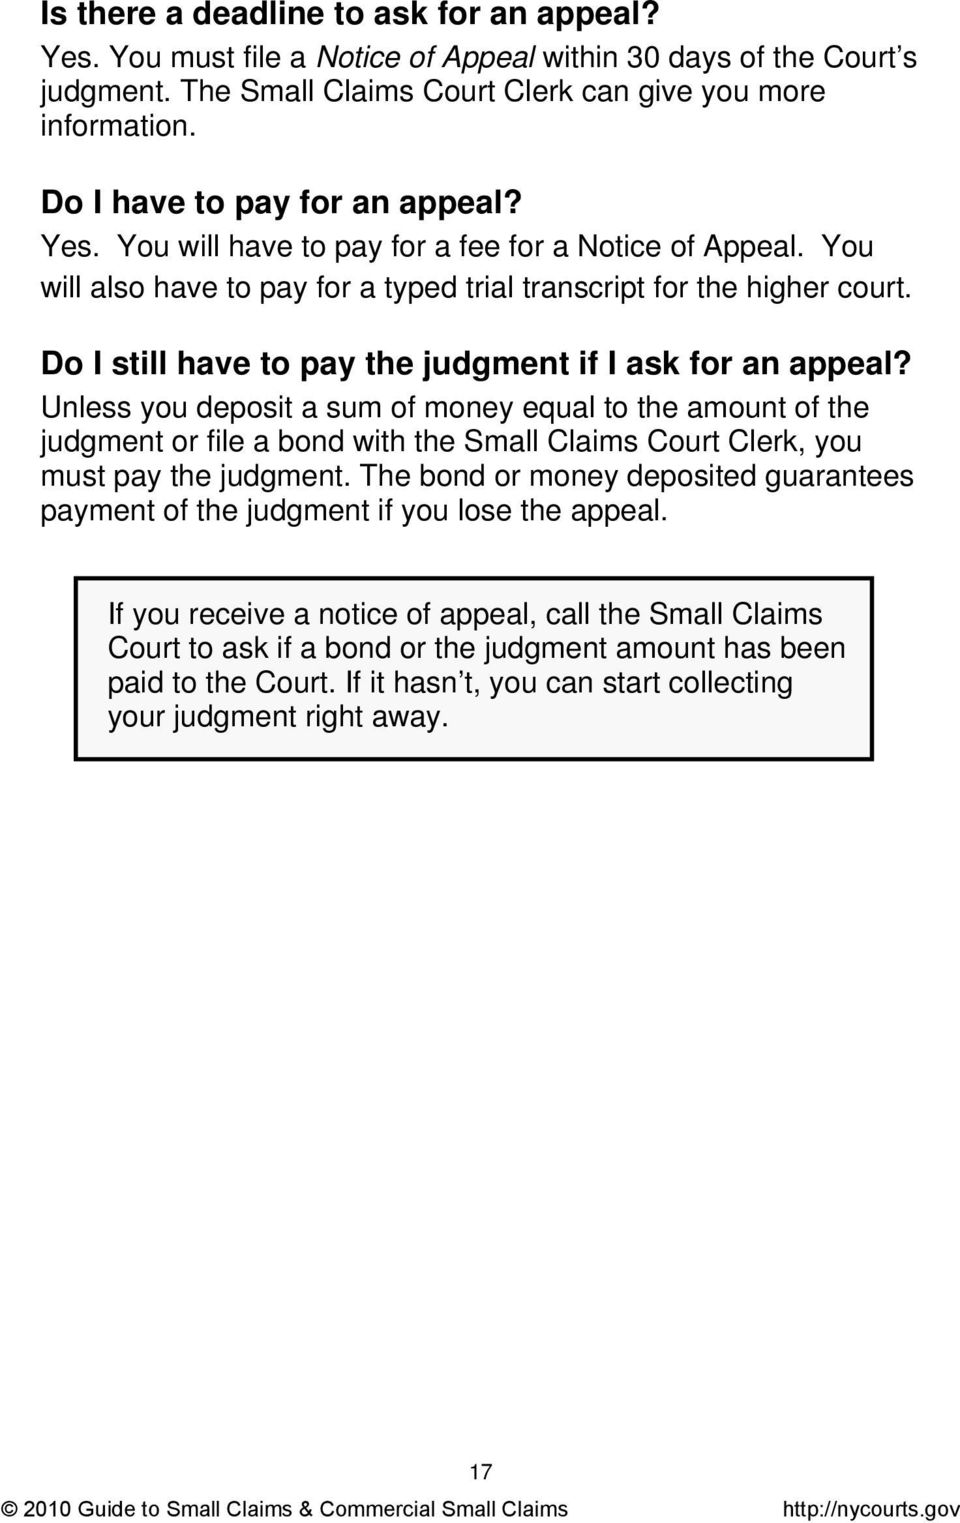 Do I still have to pay the judgment if I ask for an appeal?